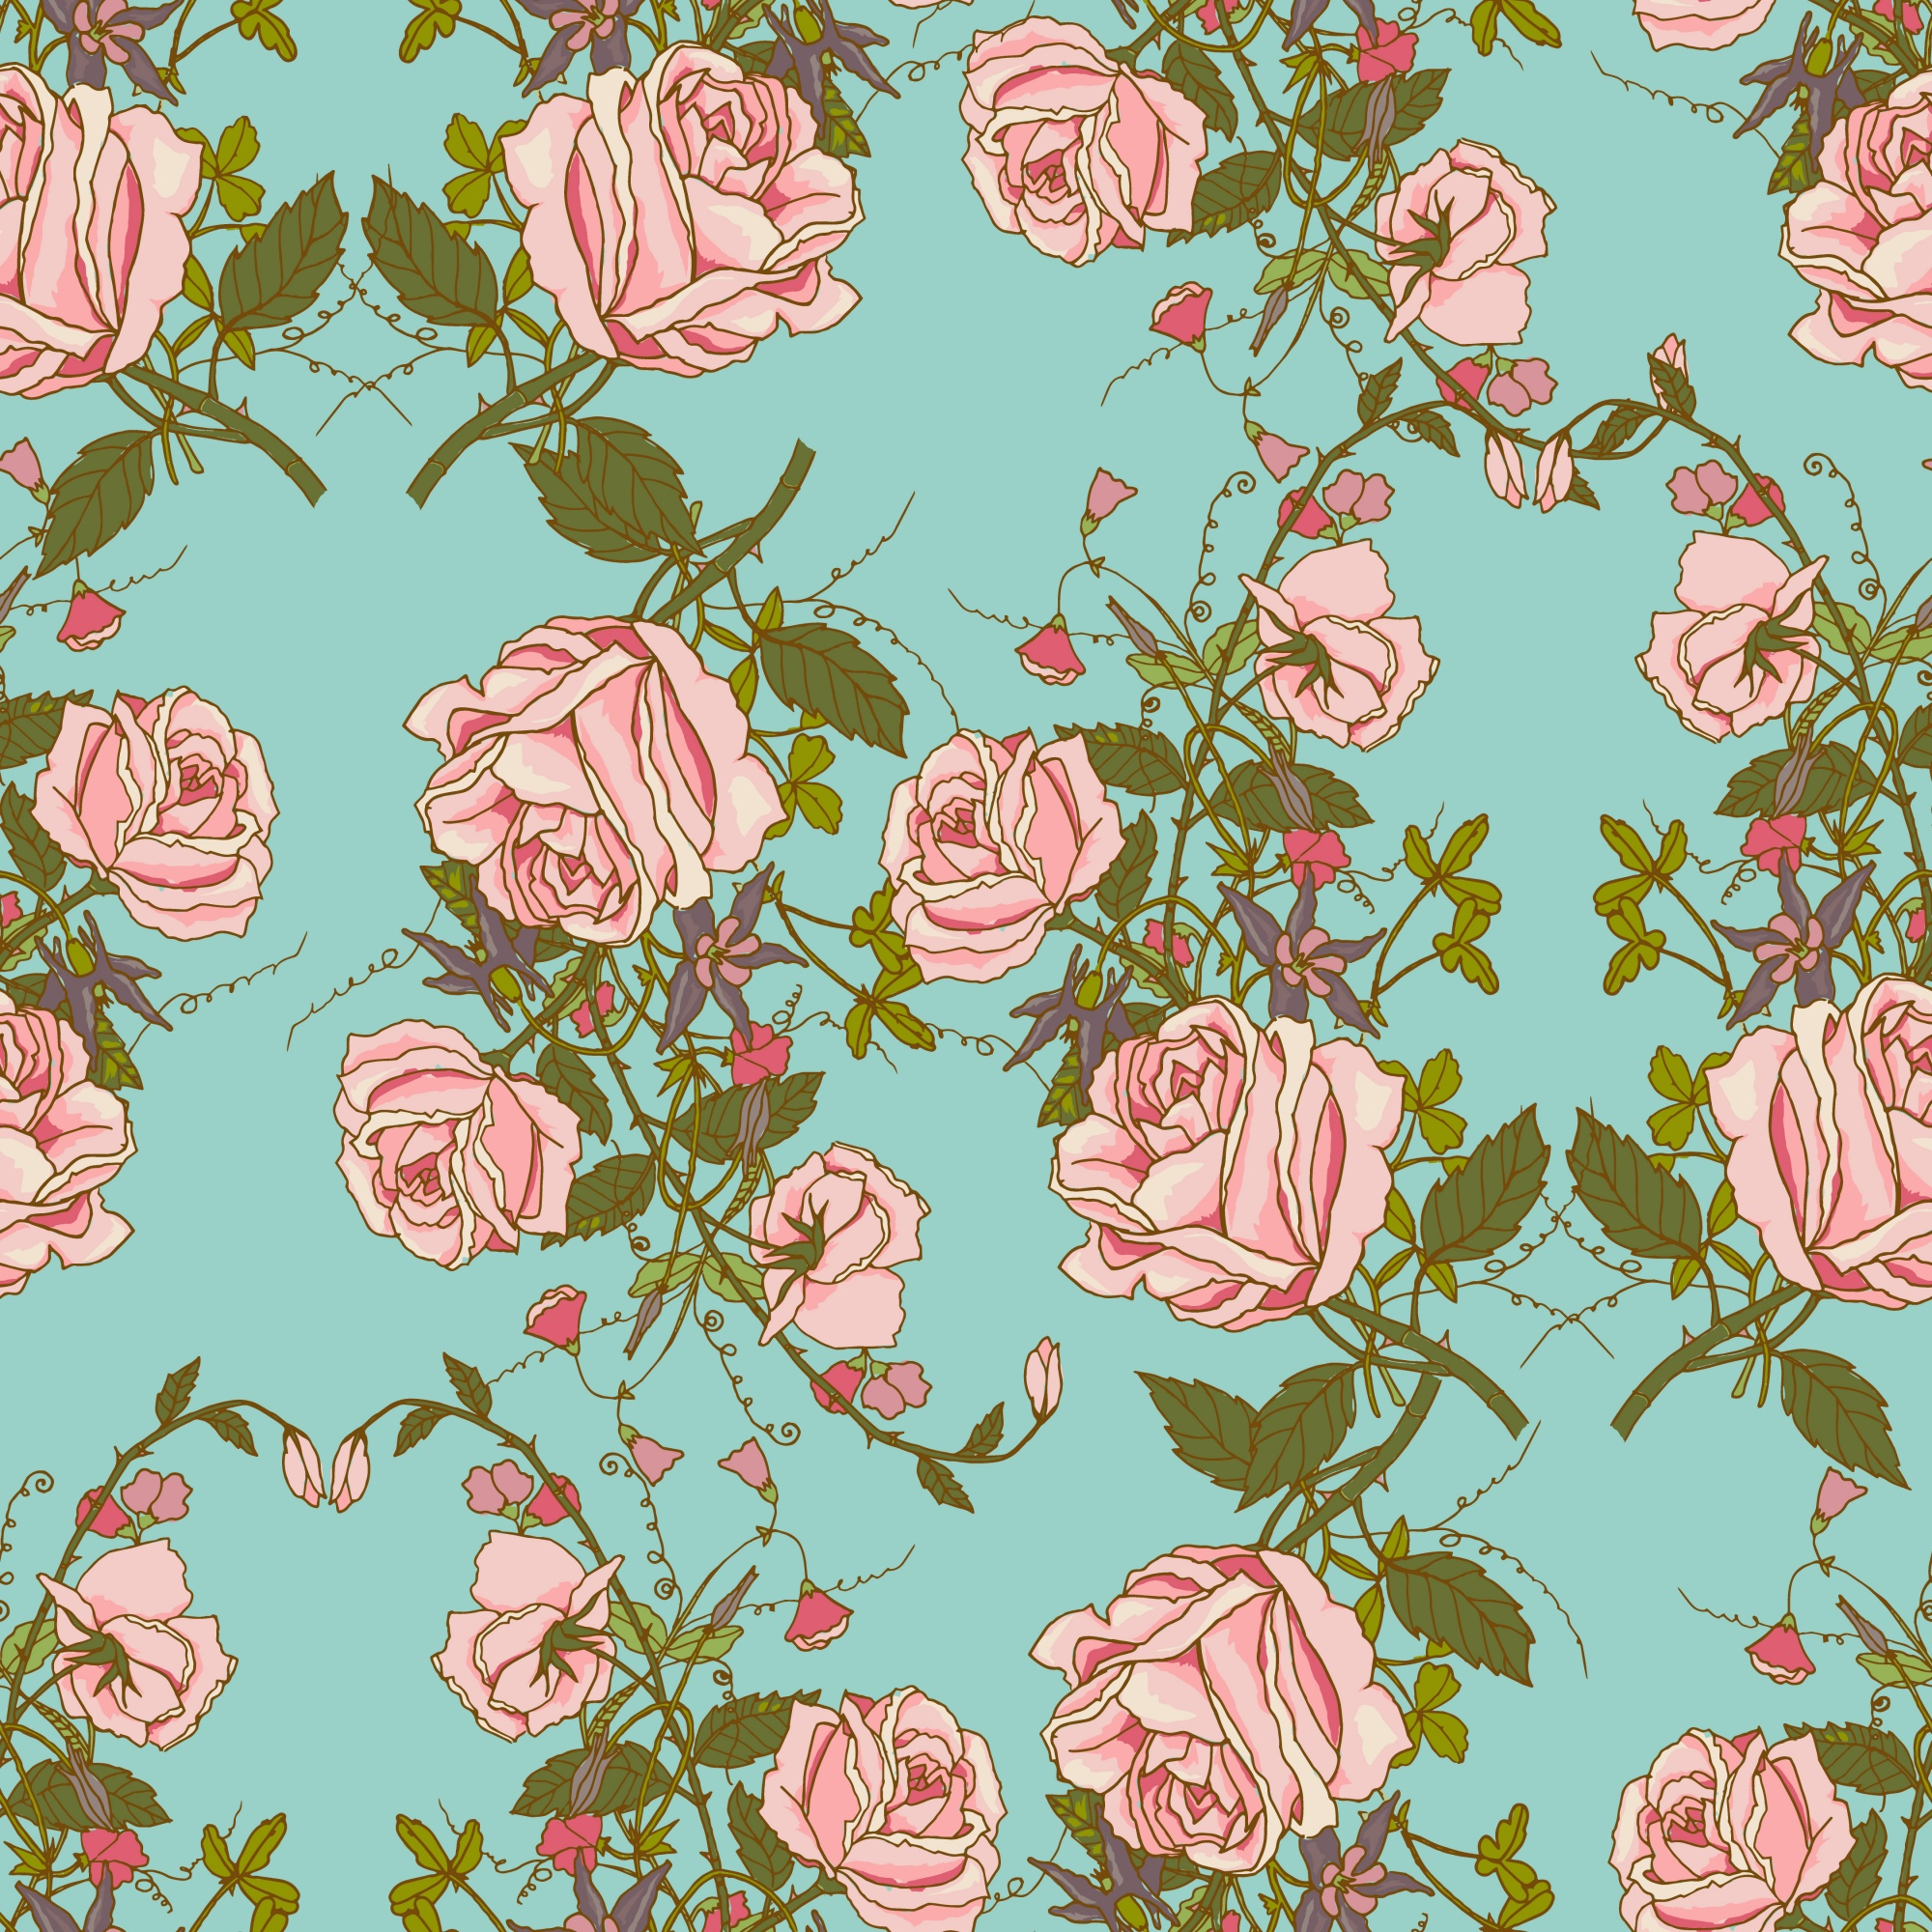 Vintage nostalgic beautiful roses bunches composition romantic floral wedding gift wrapping paper seamless pattern color vector illustration